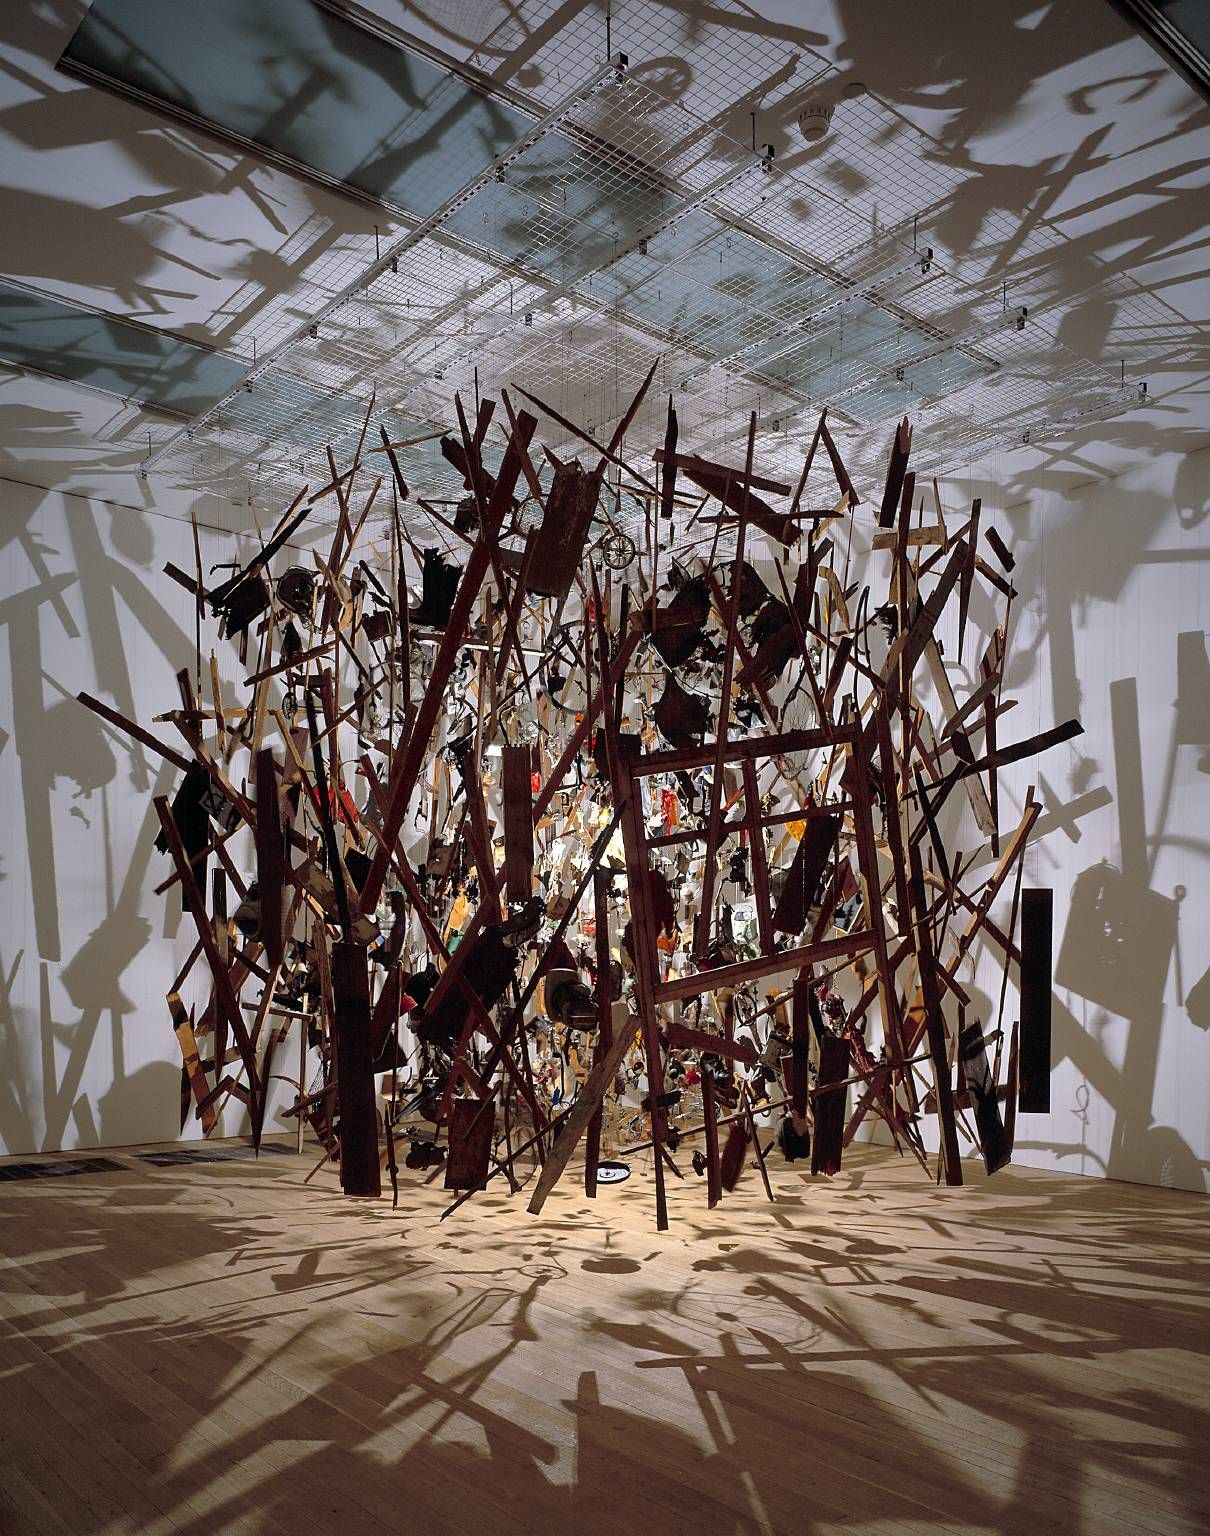 Cornelia Parker: Cold dark matter exploded view